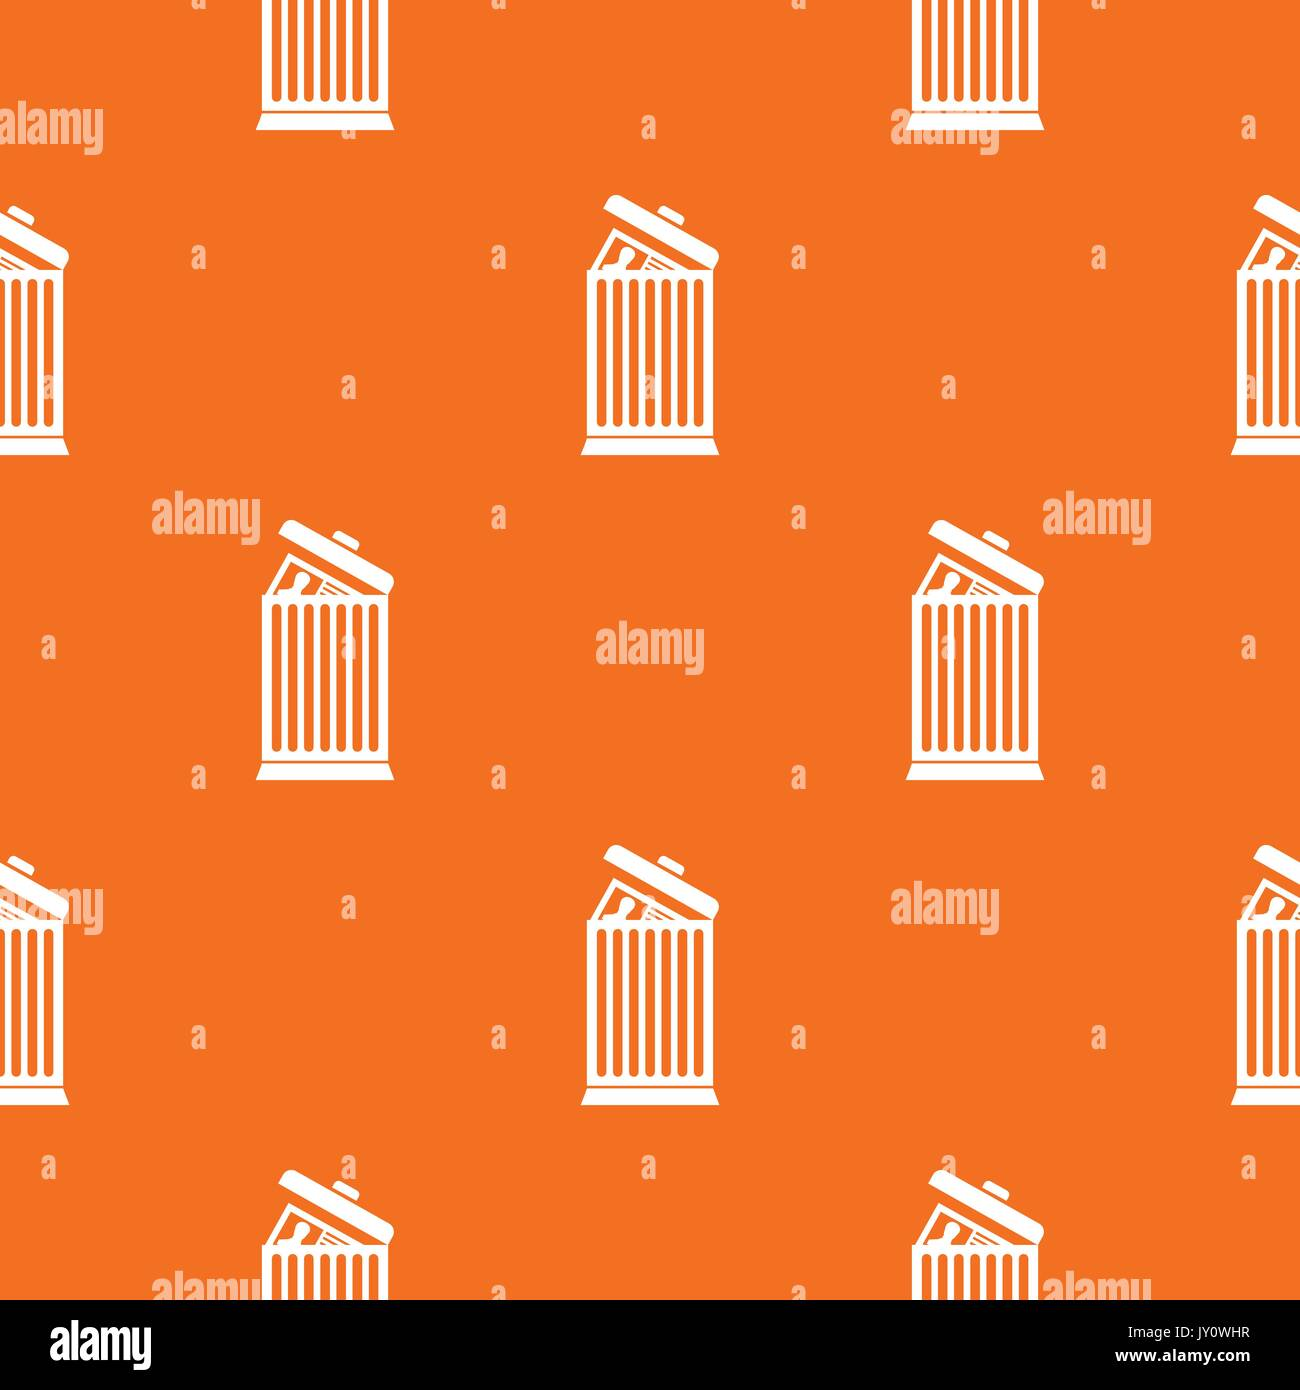 resume thrown away in the trash can pattern seamless stock vector